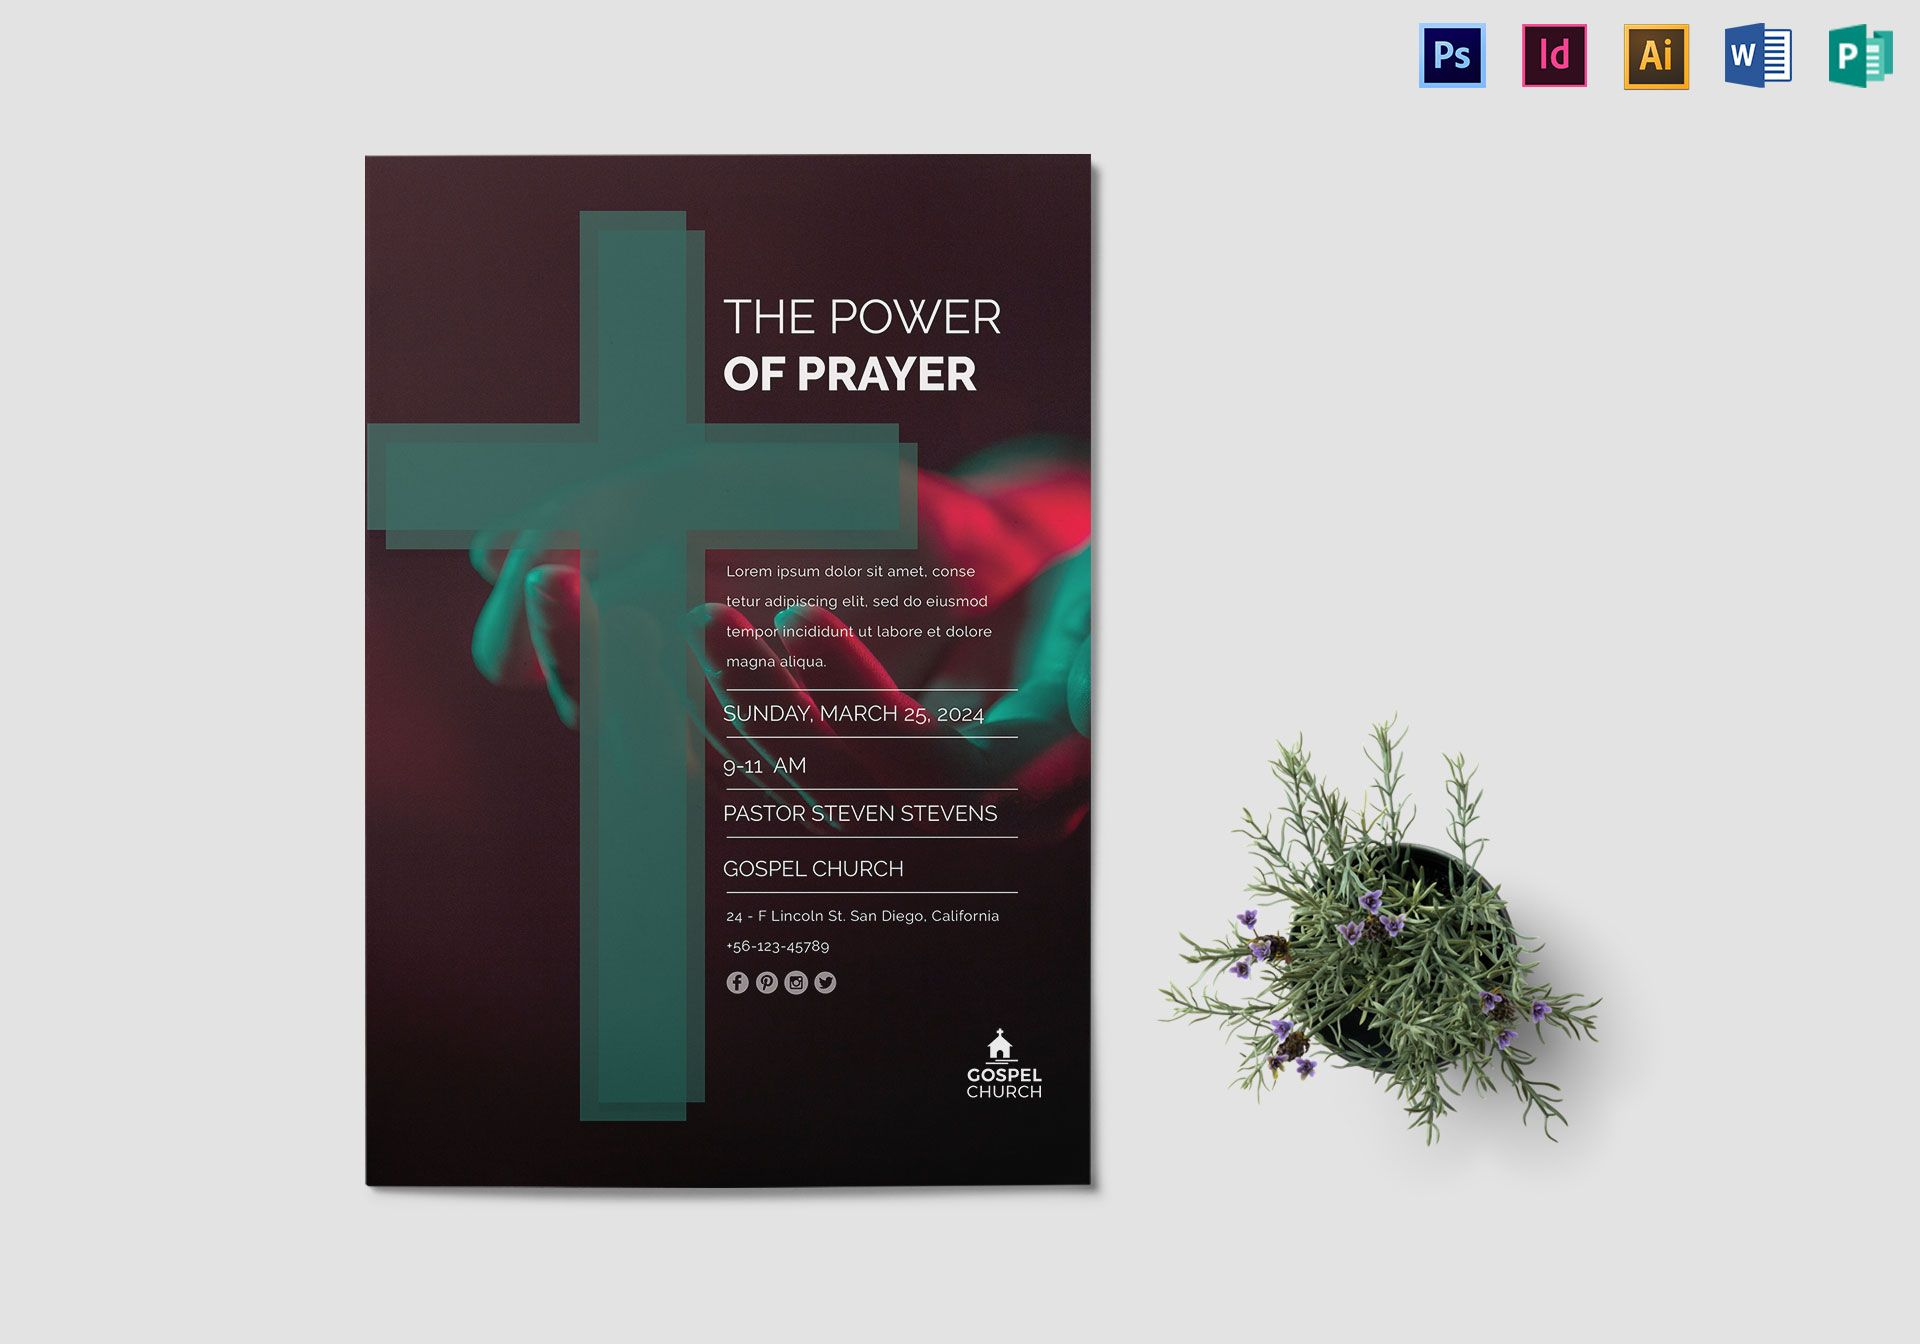 The Power Of Prayer Church Flyer Design Template In Psd Word